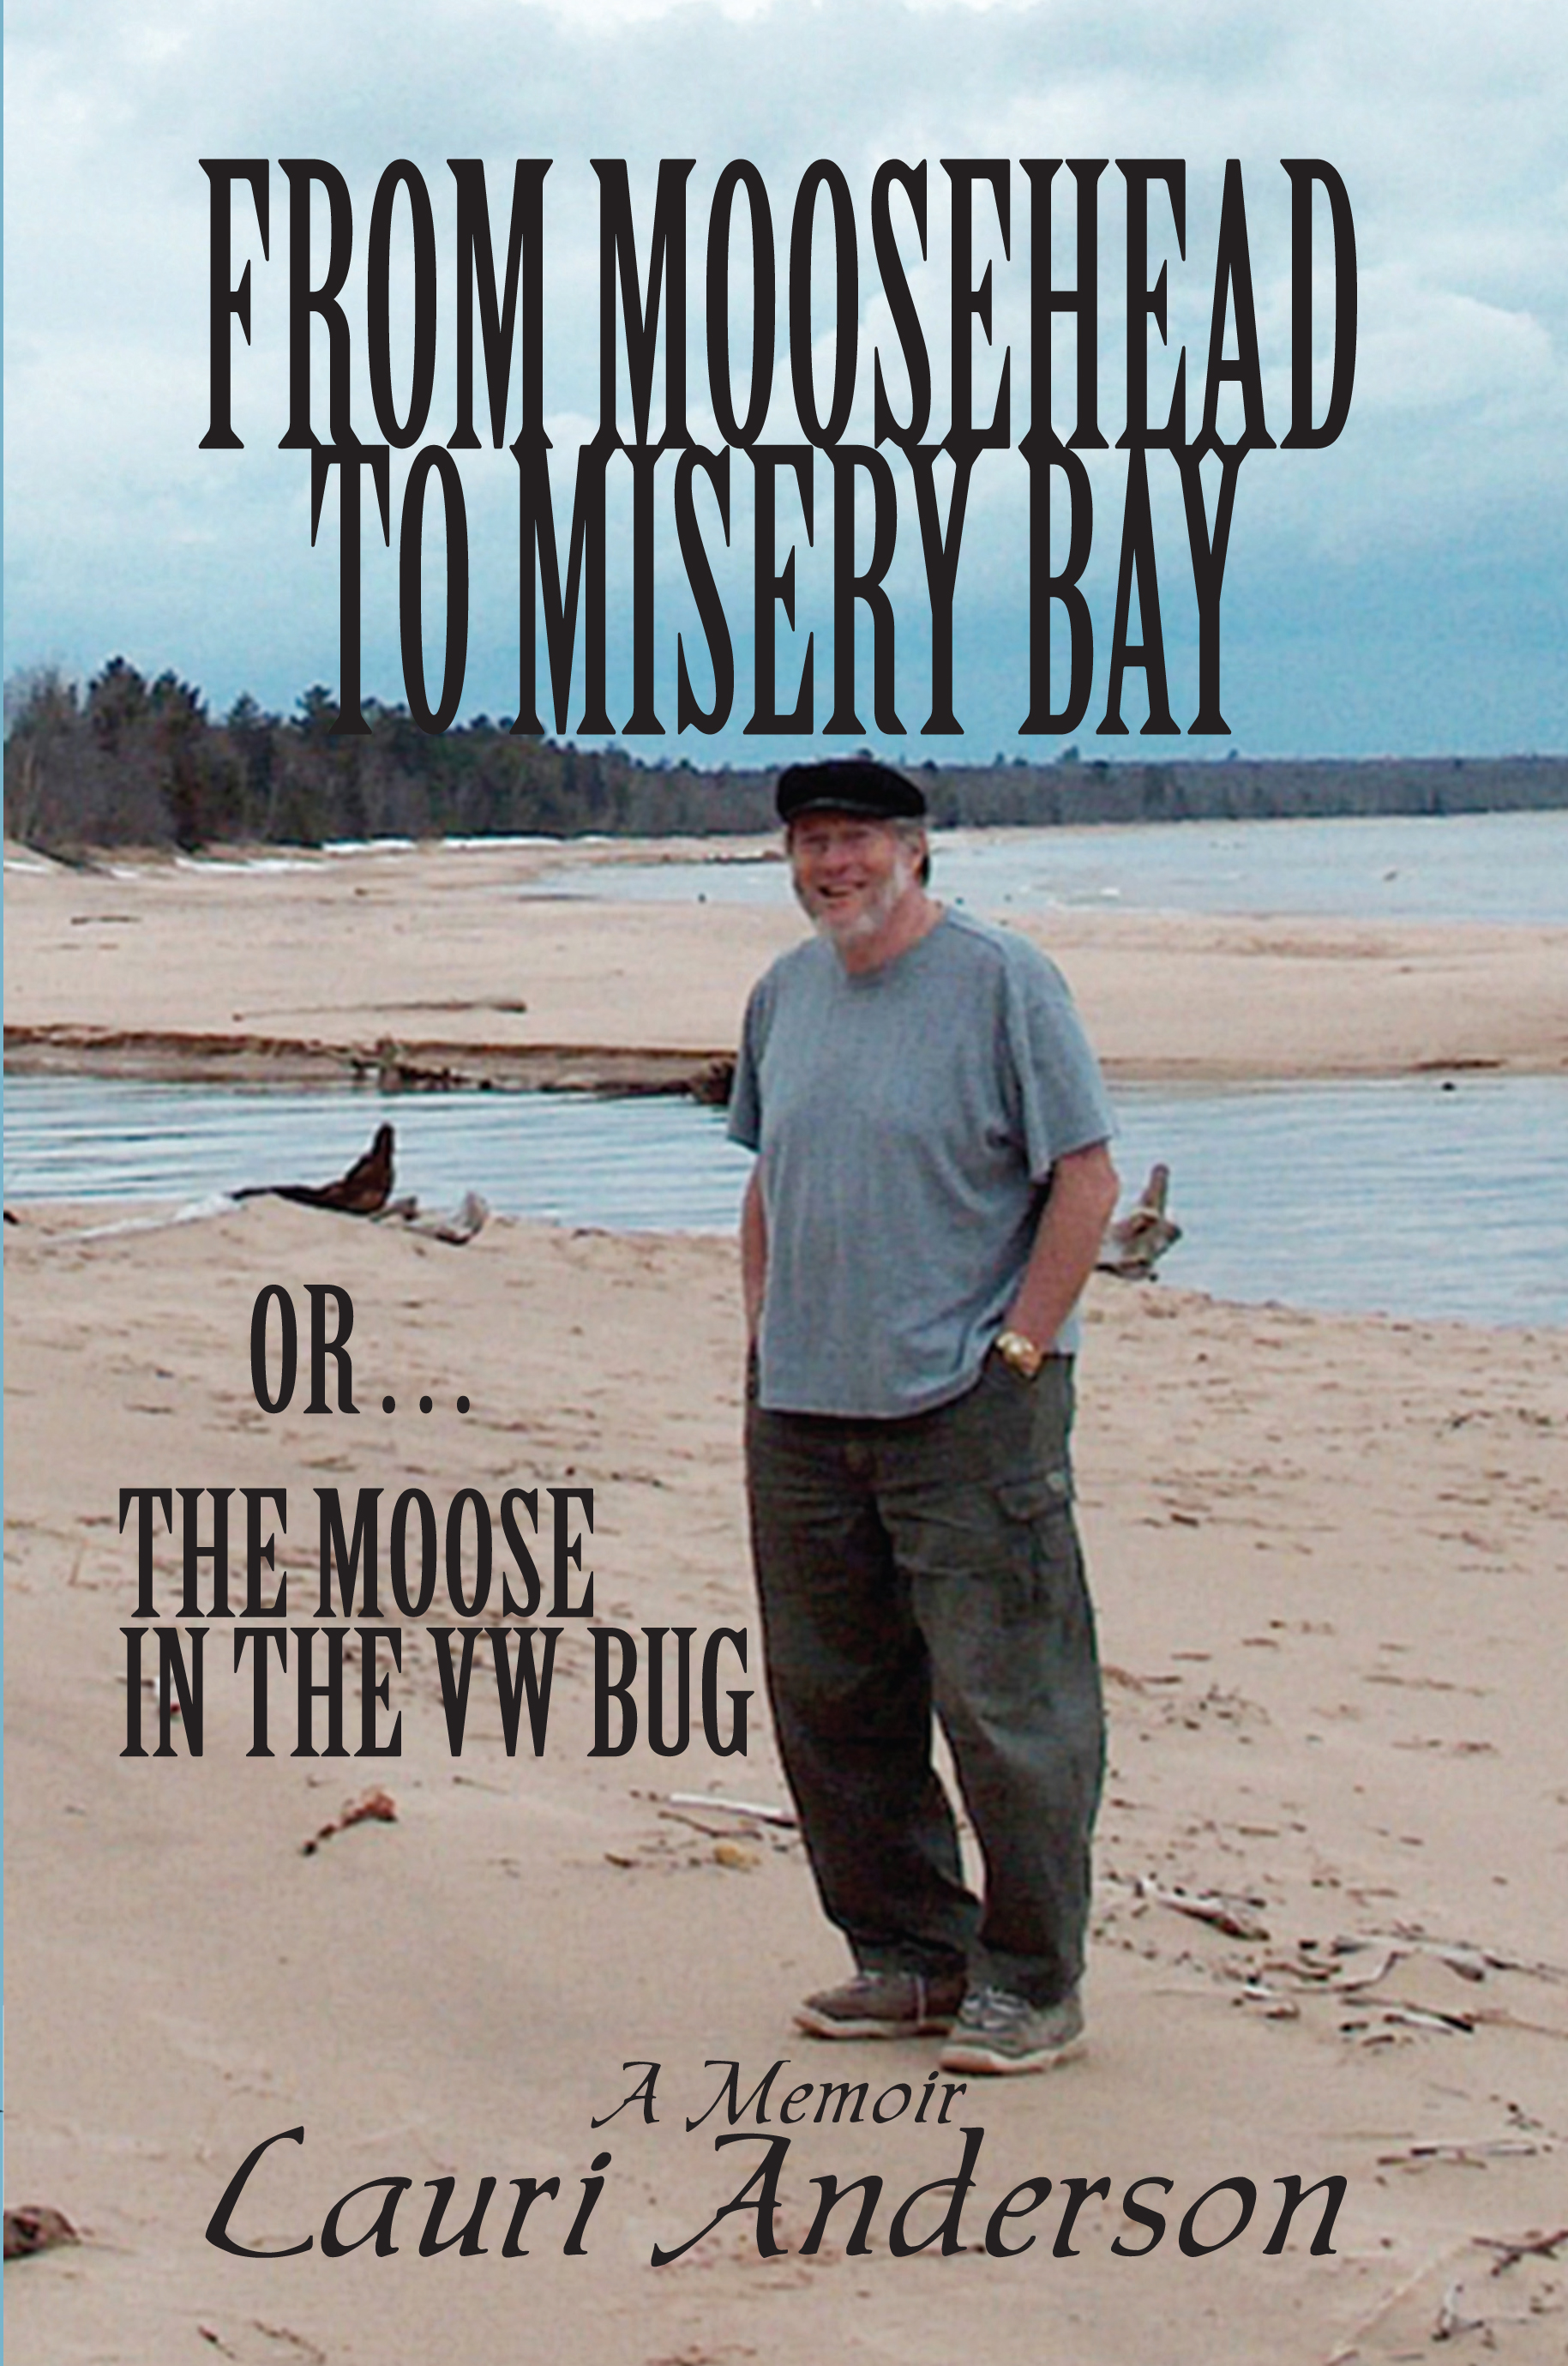 From Moosehead to Misery Bay or . . . The Moose in the VW Bug